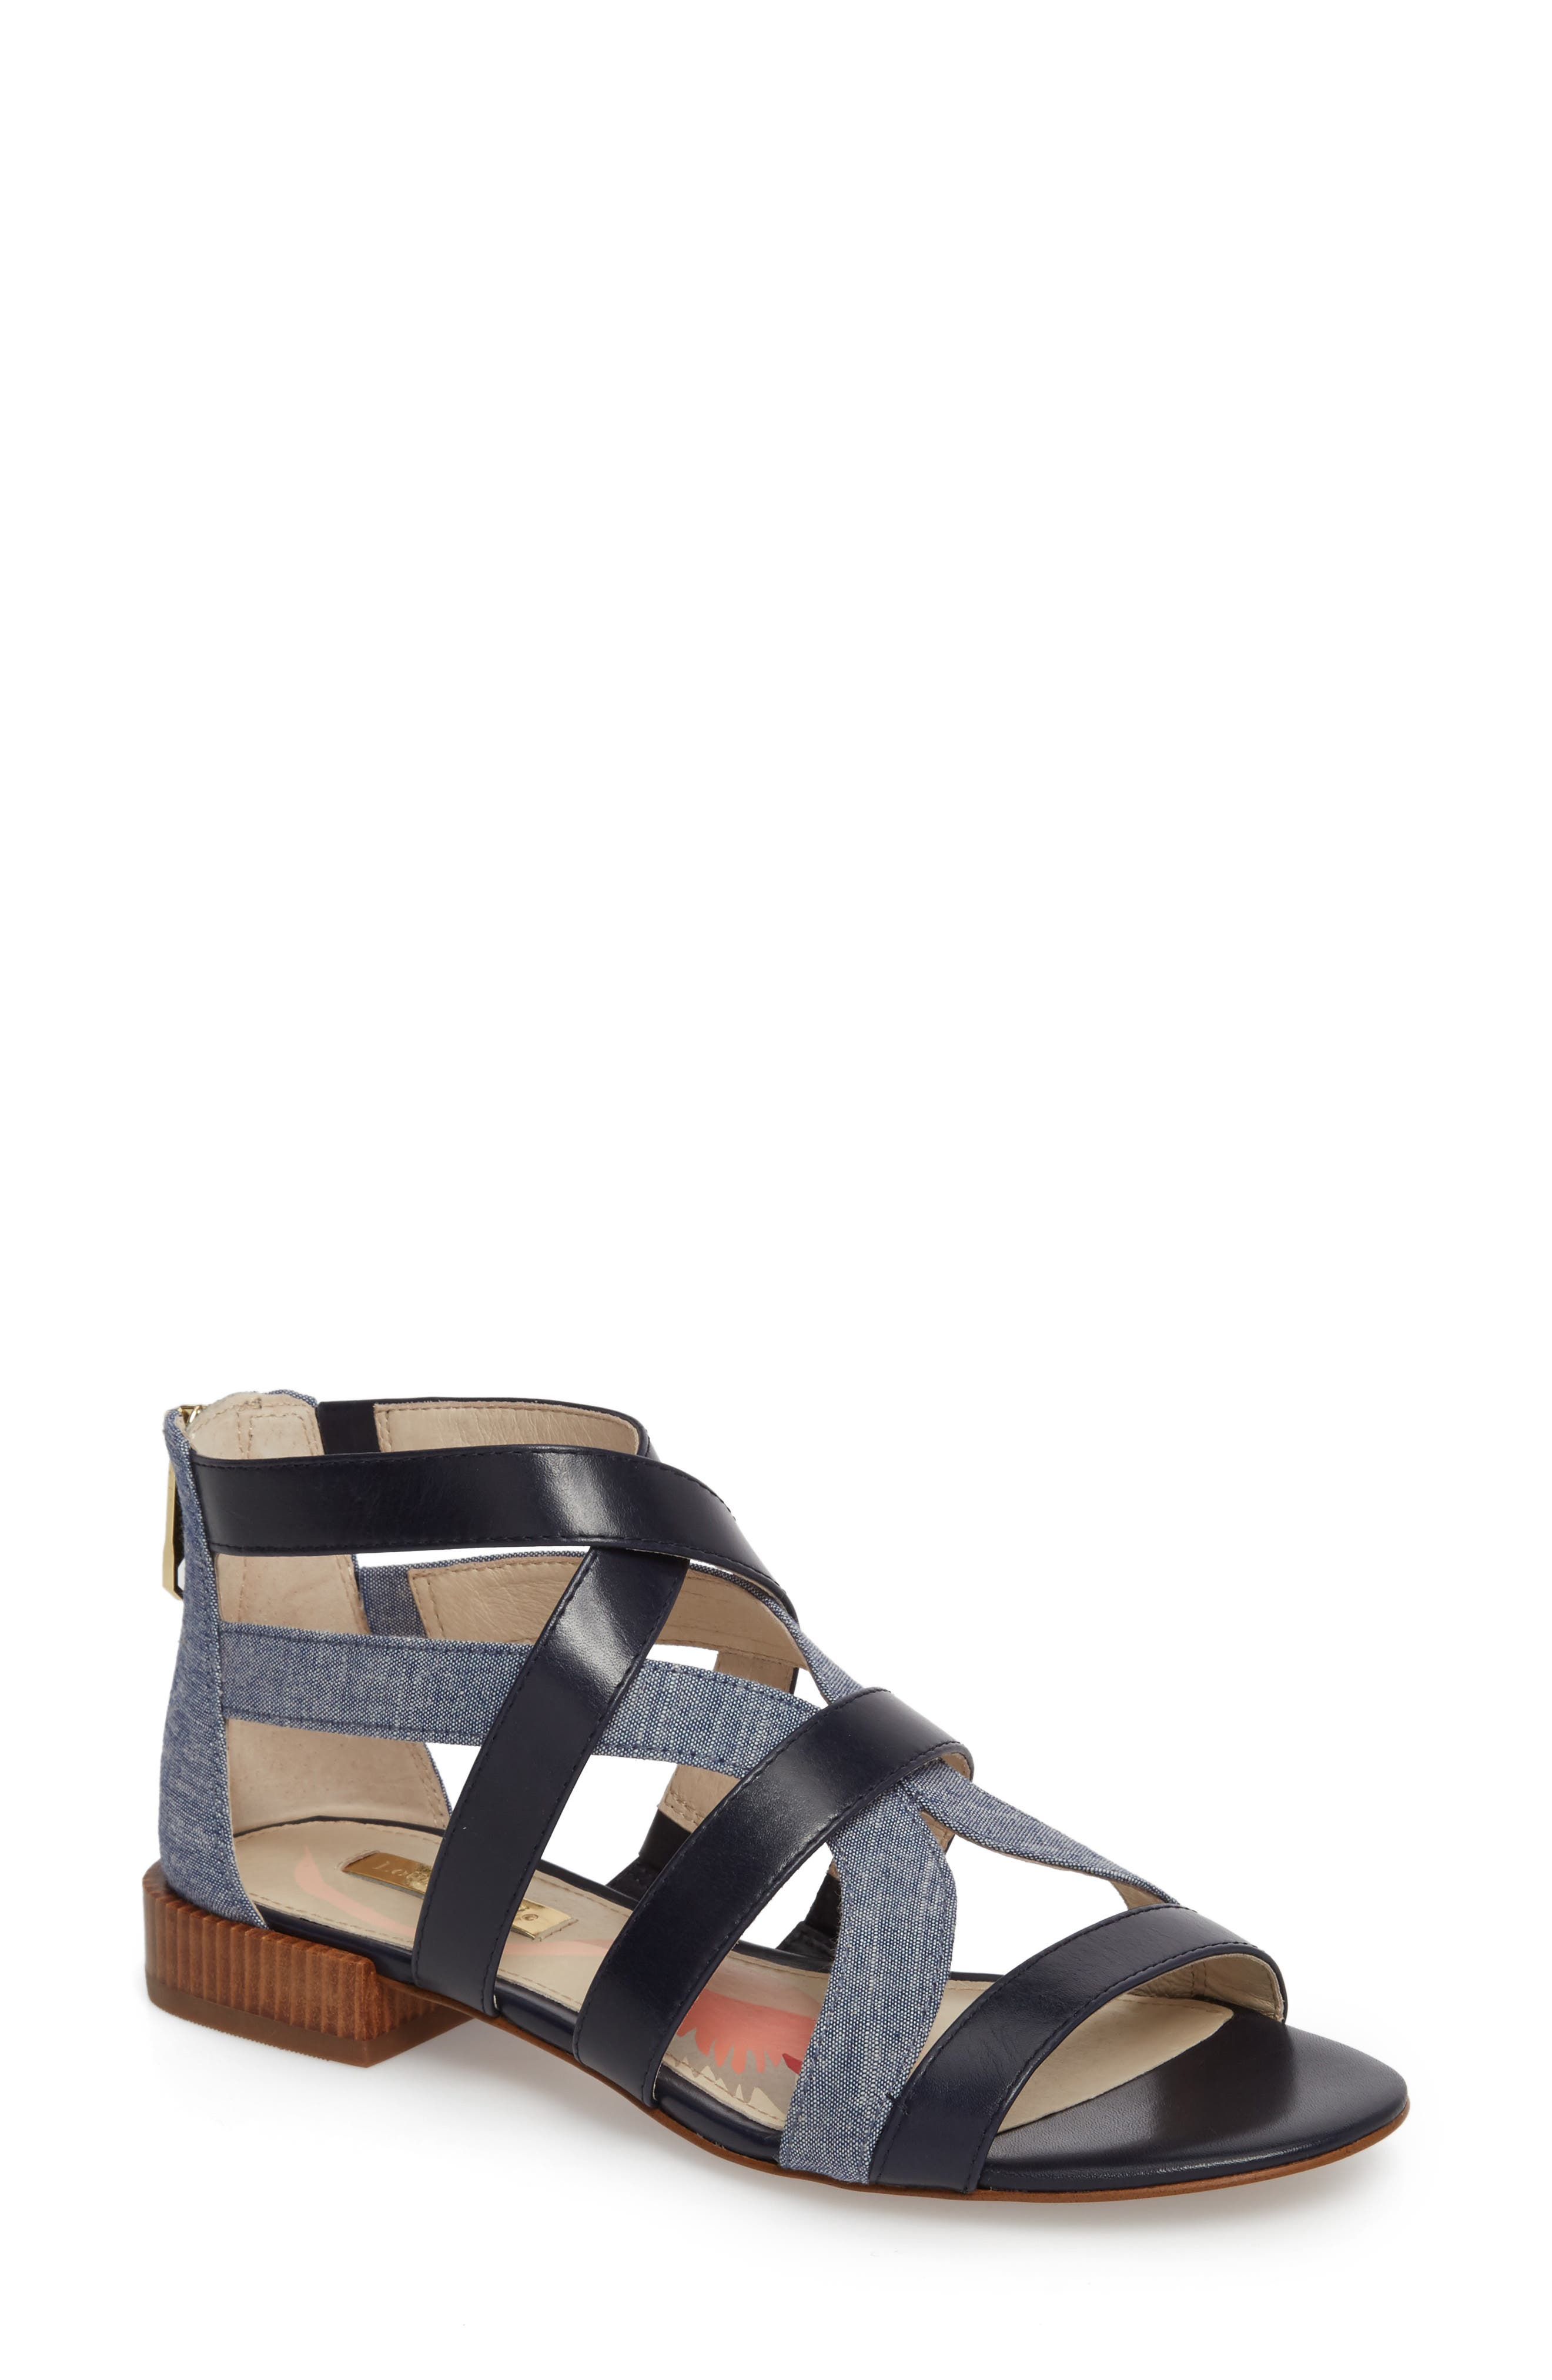 Almeyna Strappy Sandal,                             Main thumbnail 1, color,                             Blue Moon Leather